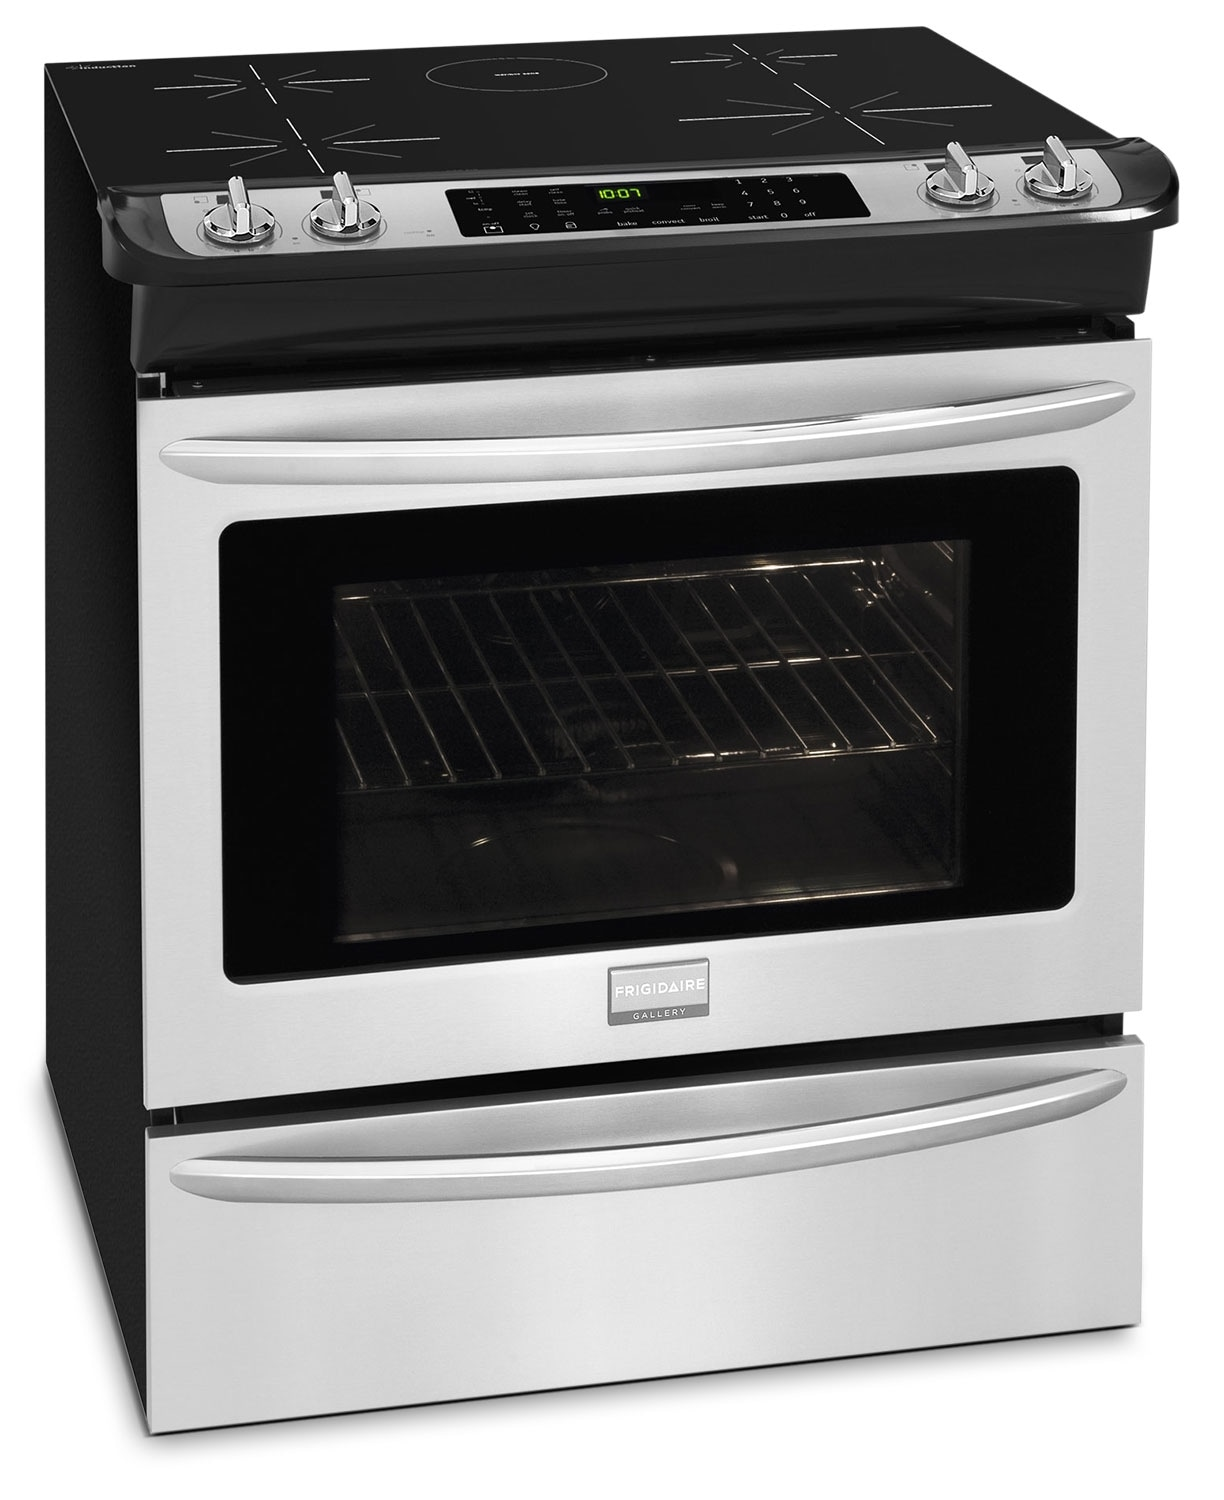 Frigidaire Gallery Stainless Steel Slide-In Induction Range (4.6 Cu. Ft.) - CGIS3065PF